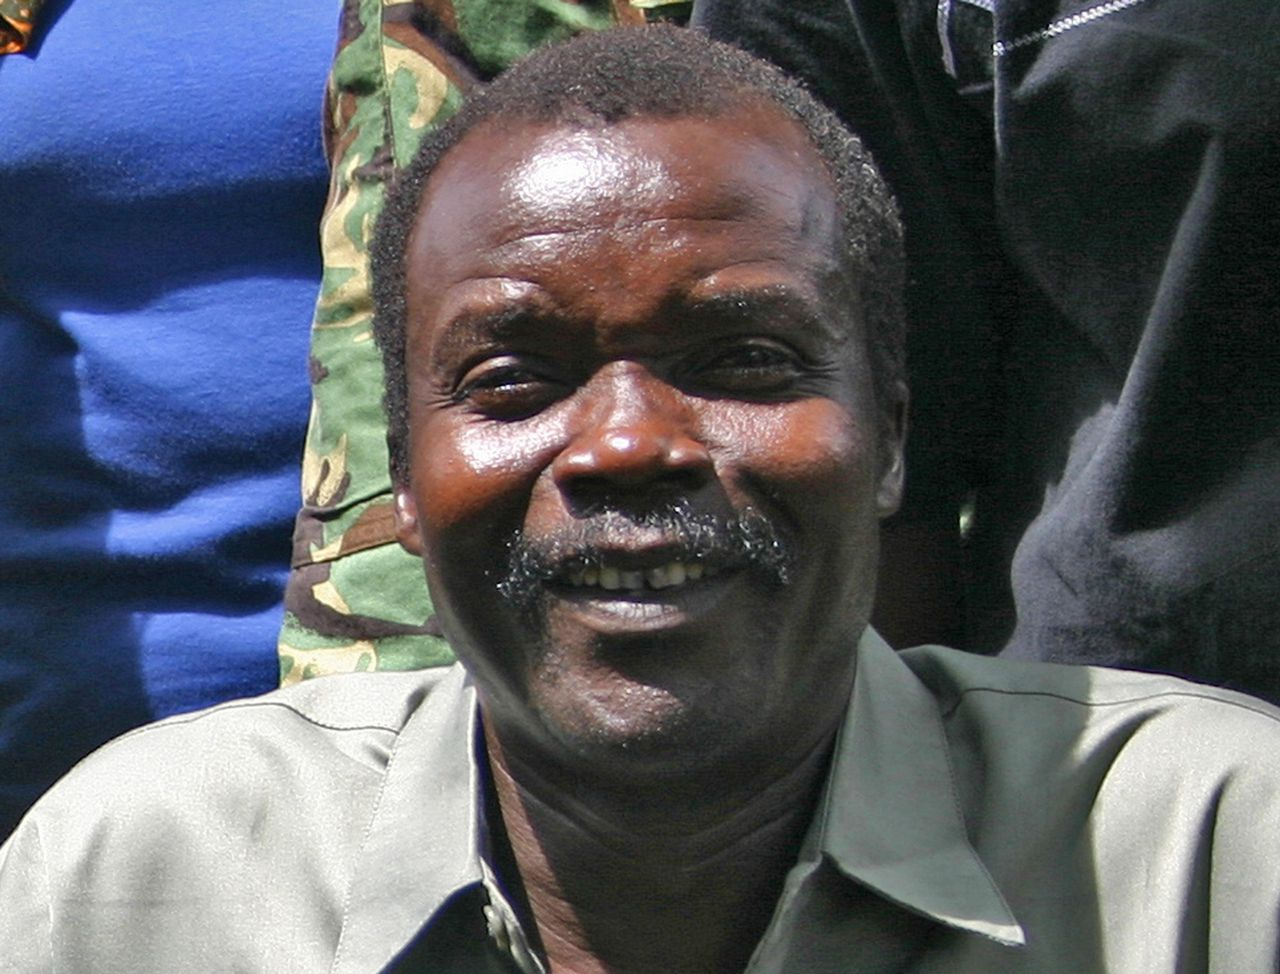 Lord's Resistance Army (LRA) leader Major General Joseph Kony, is seen in an exclusive image at peace negotiations in Ri-Kwangba, southern Sudan November 30, 2008. The U.S. State Department said on Wednesday it will offer a reward of up to $5 million for information leading to the arrest, transfer or conviction fugitive warlord Joseph Kony and some of his top aides. REUTERS/Africa24 Media (SUDAN - Tags: POLITICS CIVIL UNREST CONFLICT) NO ONLINE USE. NOT FOR SALE FOR INTERNET DISPLAY. TV OUT. NOT FOR SALE TO TELEVISION BROADCASTERS. FOR EDITORIAL USE ONLY. NOT FOR SALE FOR MARKETING OR ADVERTISING CAMPAIGNS